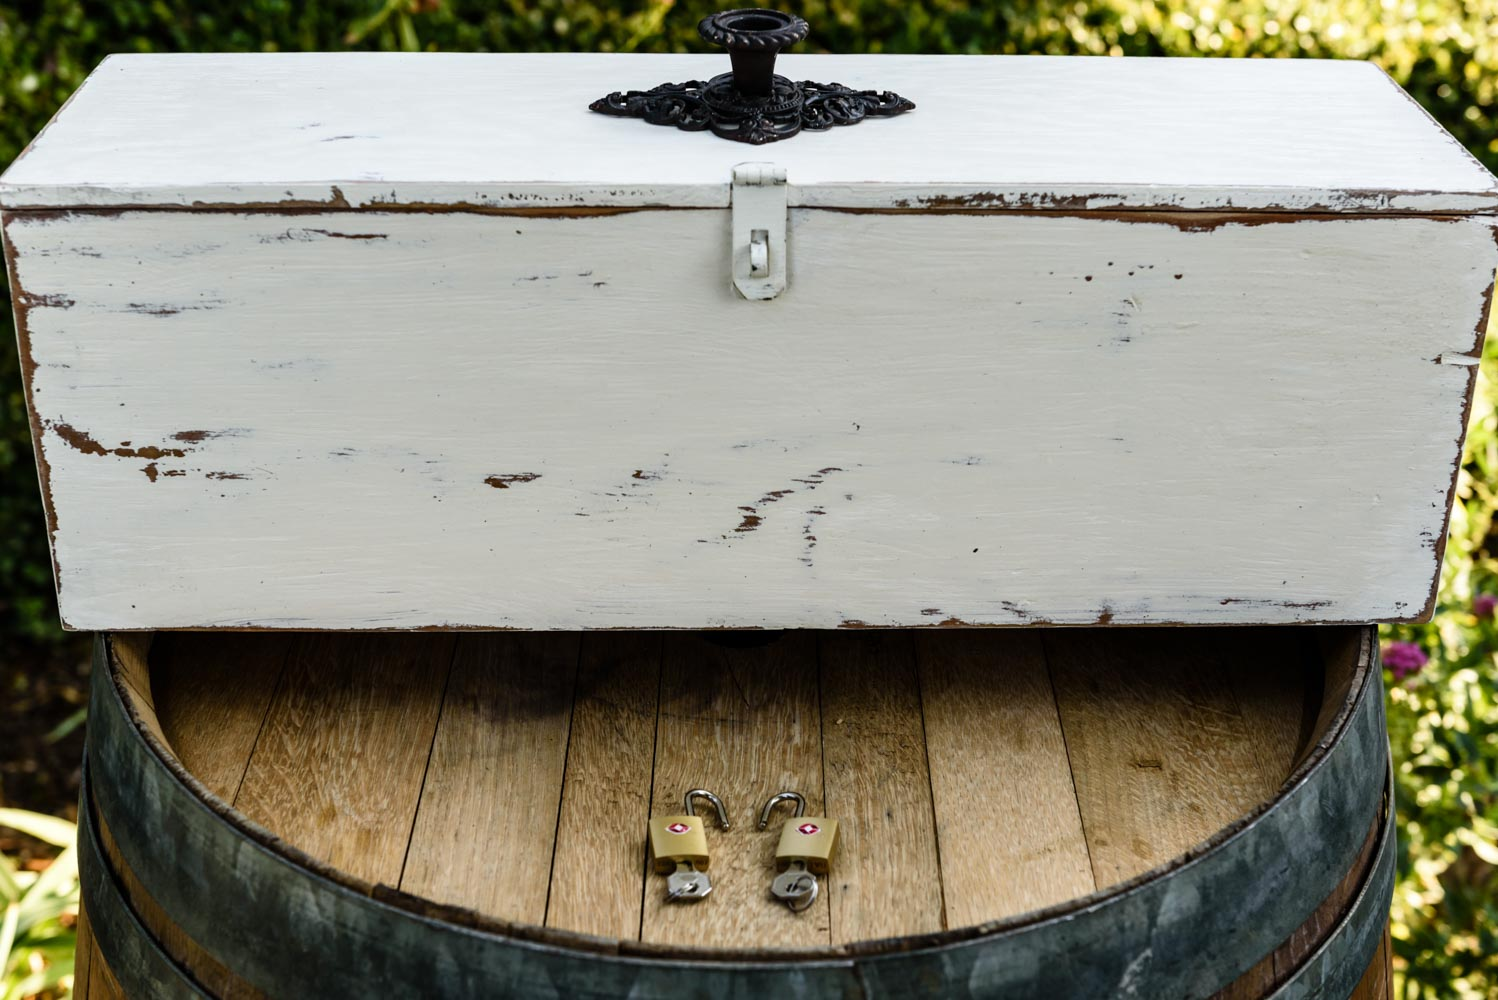 White lockable box, sitting on top of wine barrel, with two locks and keys placed nearby